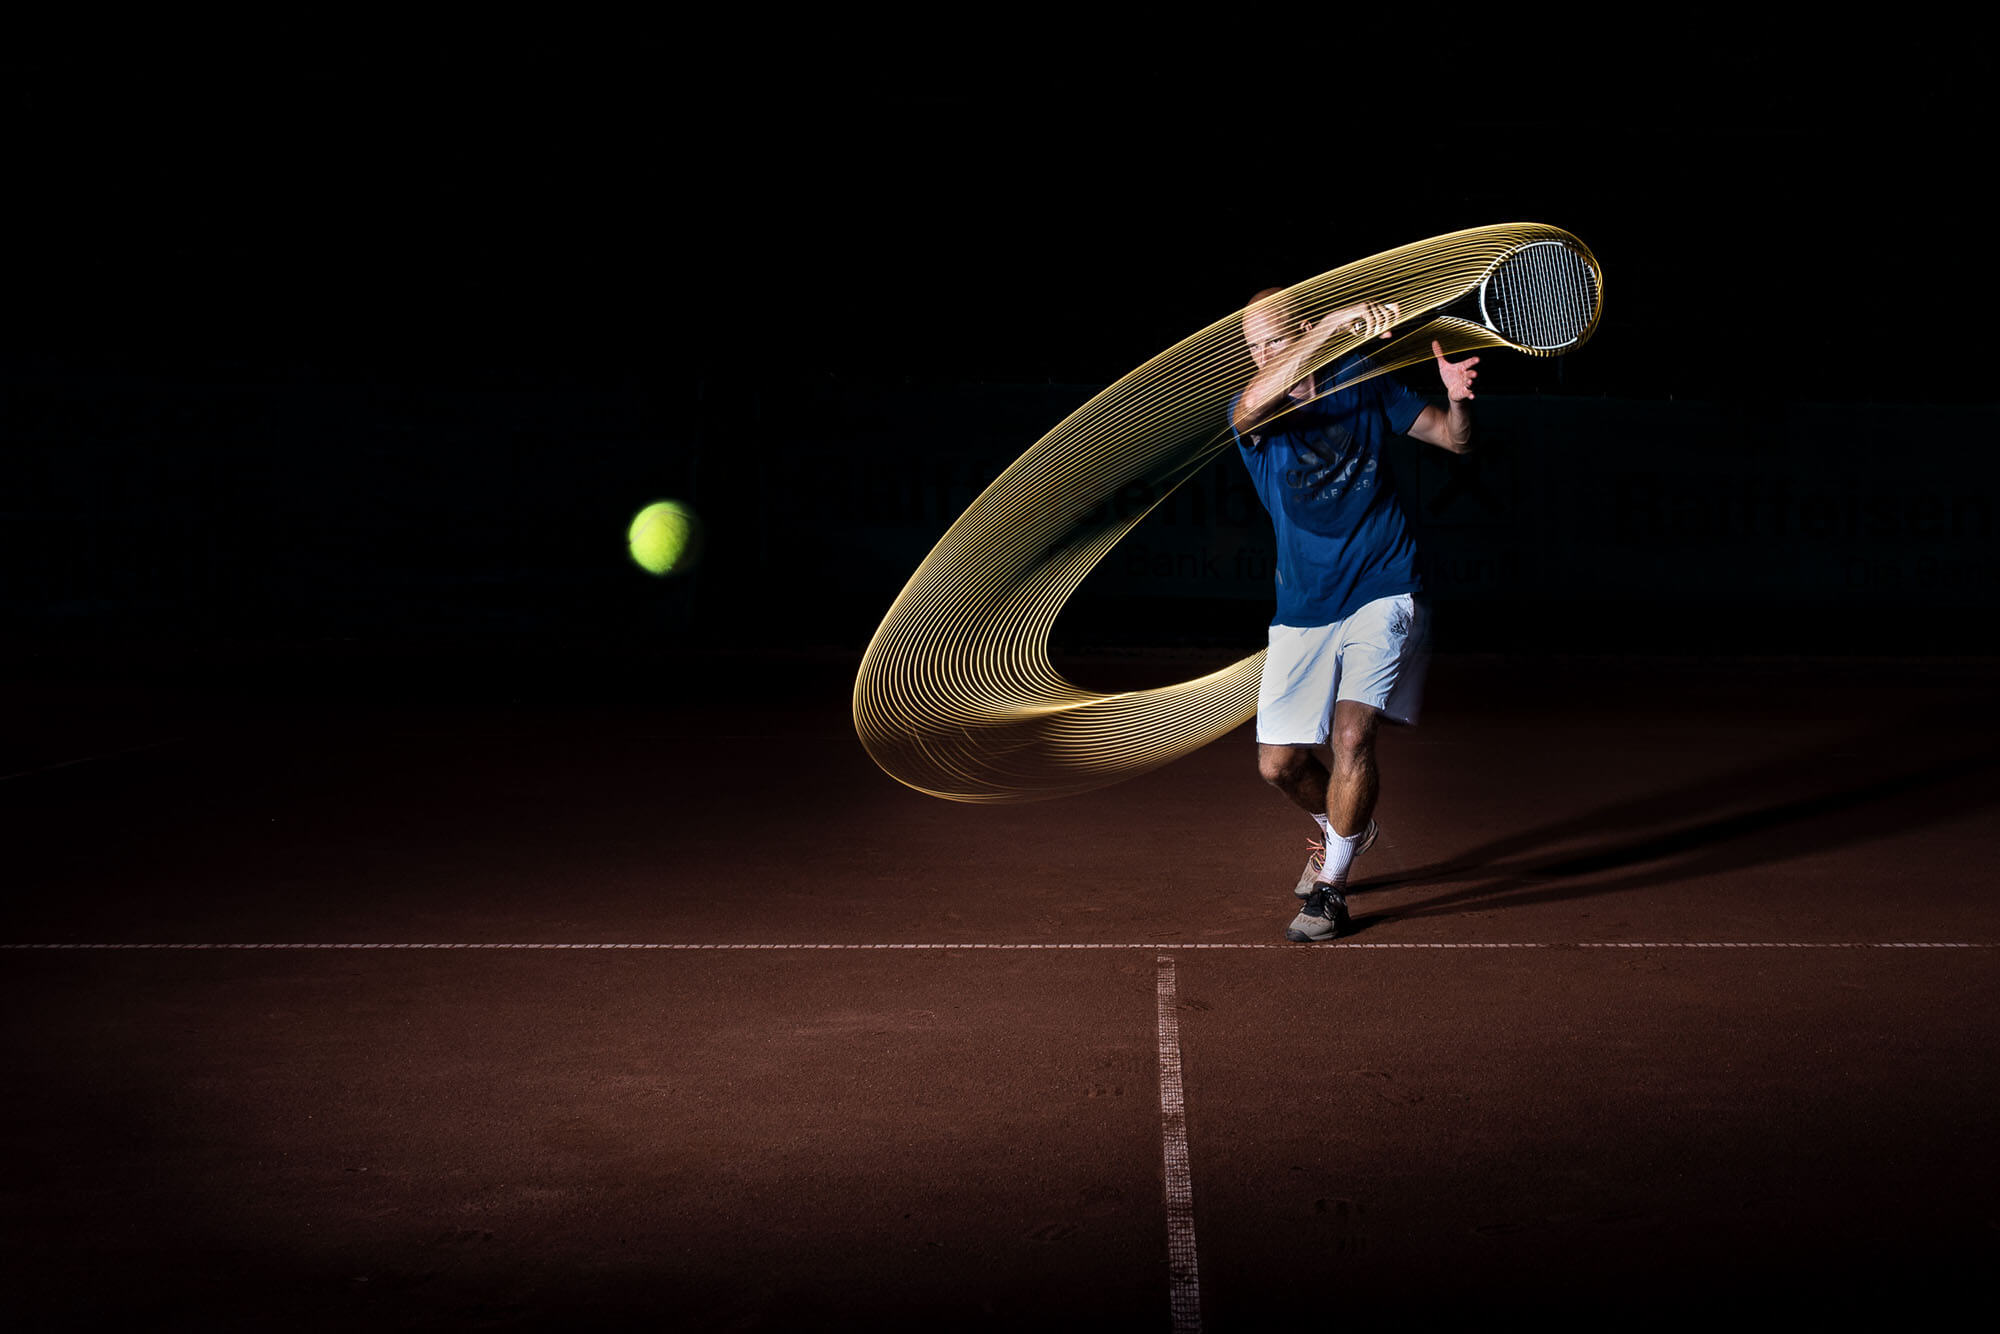 tennis forehand led lighting marco mirnegg sports photography sportfotografie flap photography fotograf philipp greindl photographer